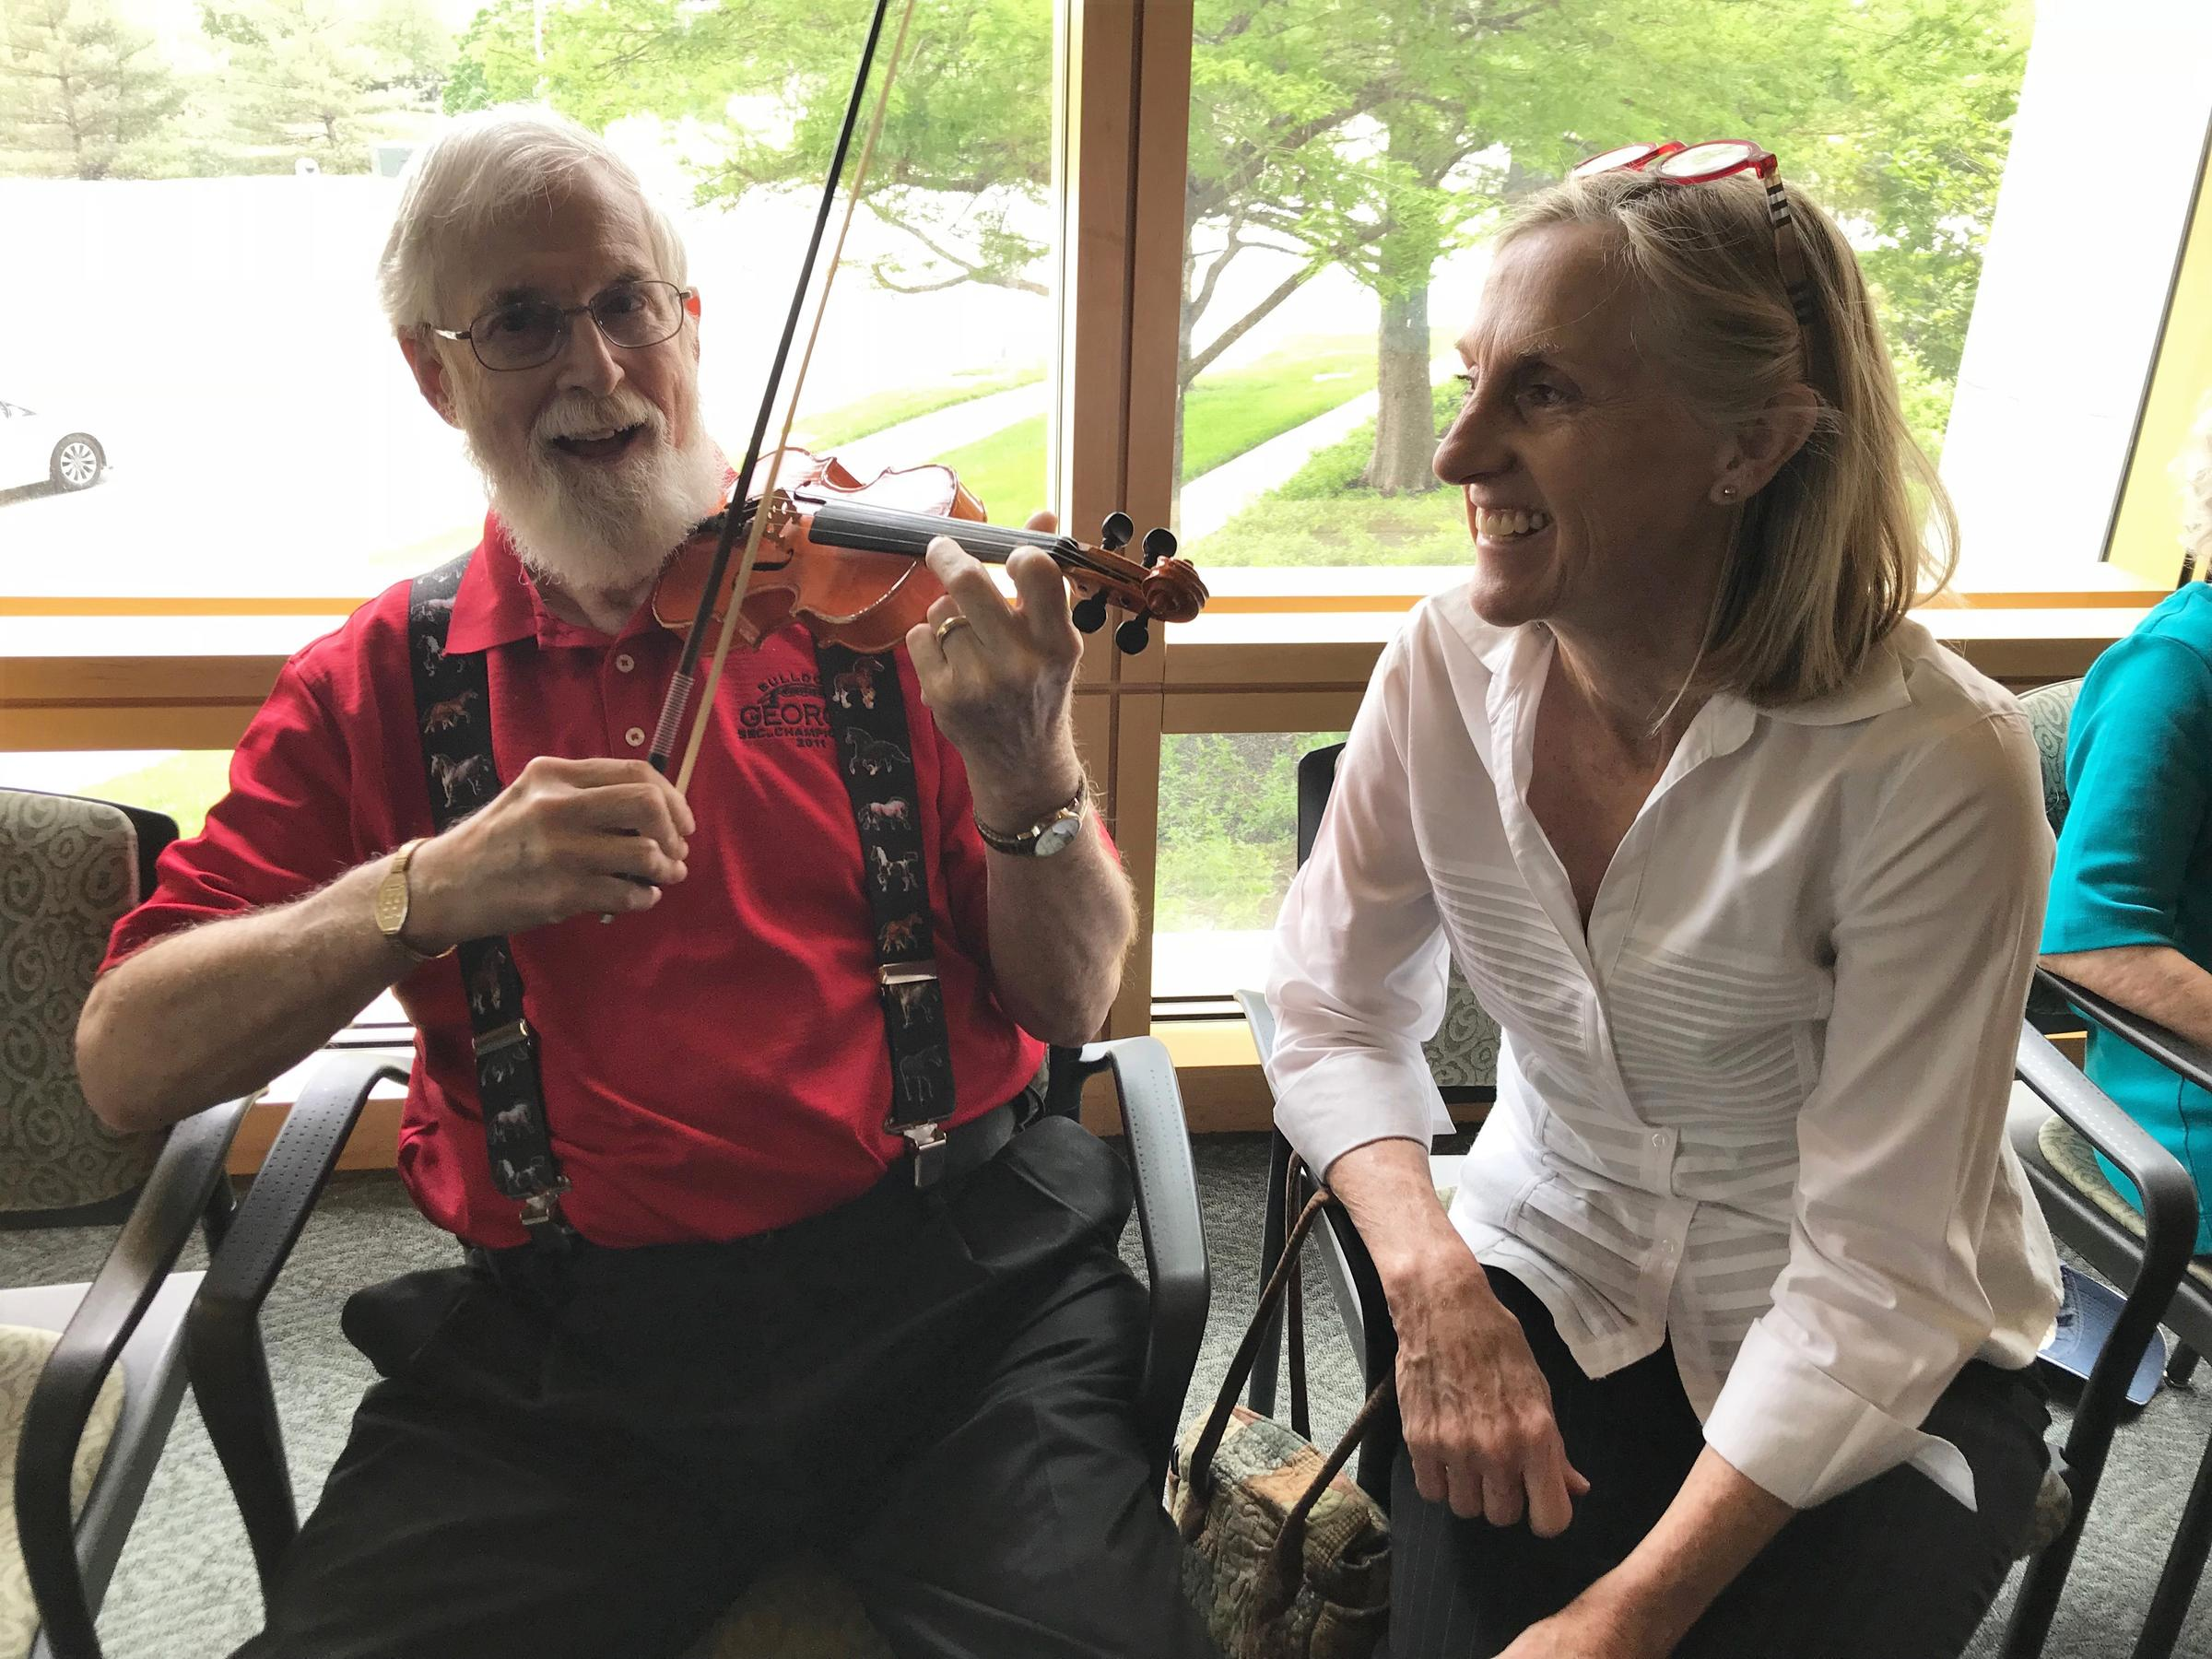 Dennis McCurdy tried out a tiny violin during the May meeting of Memory Cafe, which featured a special guest from the Kansas City Symphony. Deb Campbell, co-founder of the group's local chapter, looked on. ANNE KNIGGENDORF